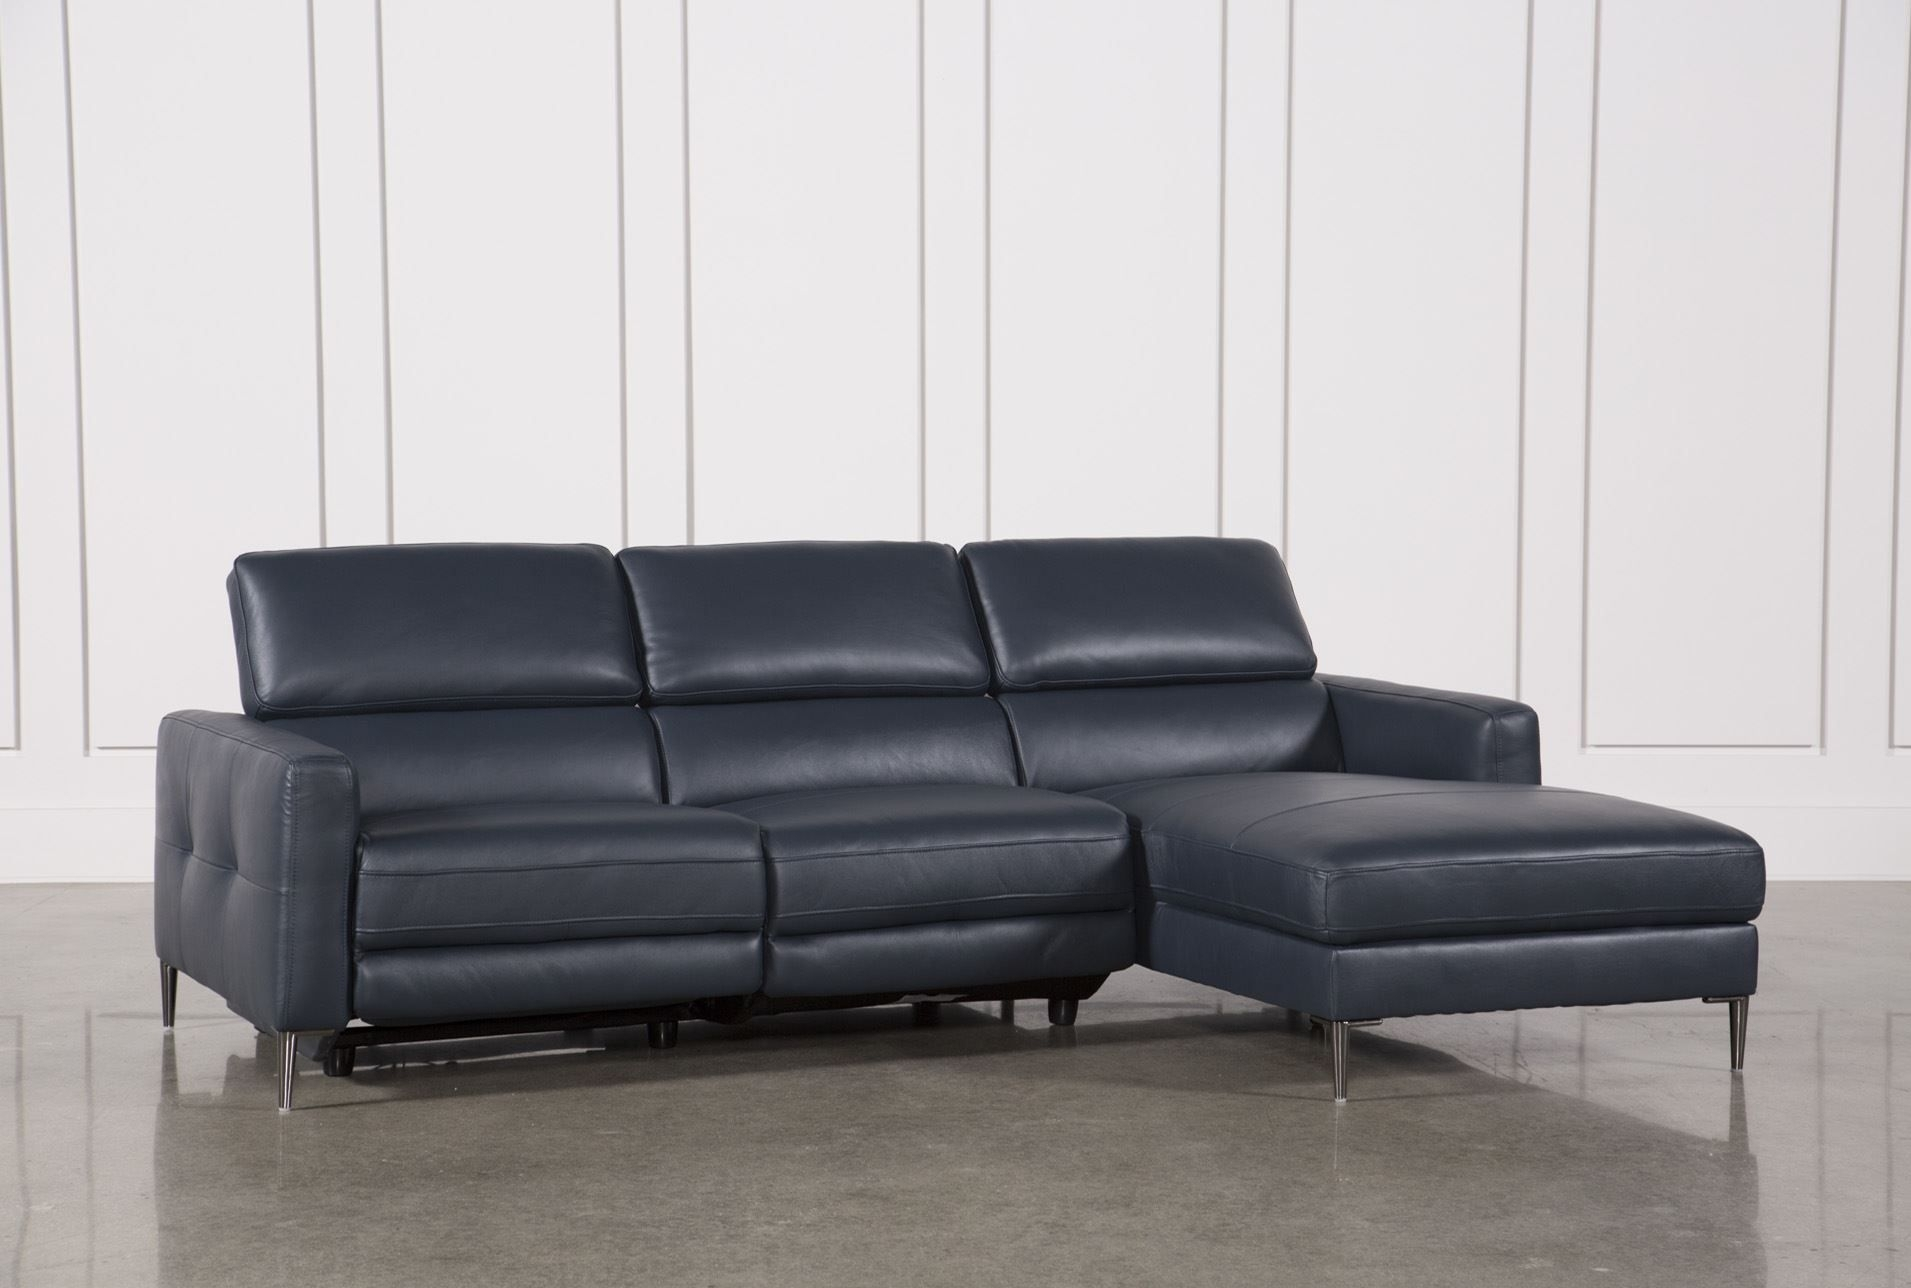 Tara Blue 2 Piece Right Facing Chaise Sofa | Chaise Sofa, Living Pertaining To Tatum Dark Grey 2 Piece Sectionals With Laf Chaise (Image 20 of 25)